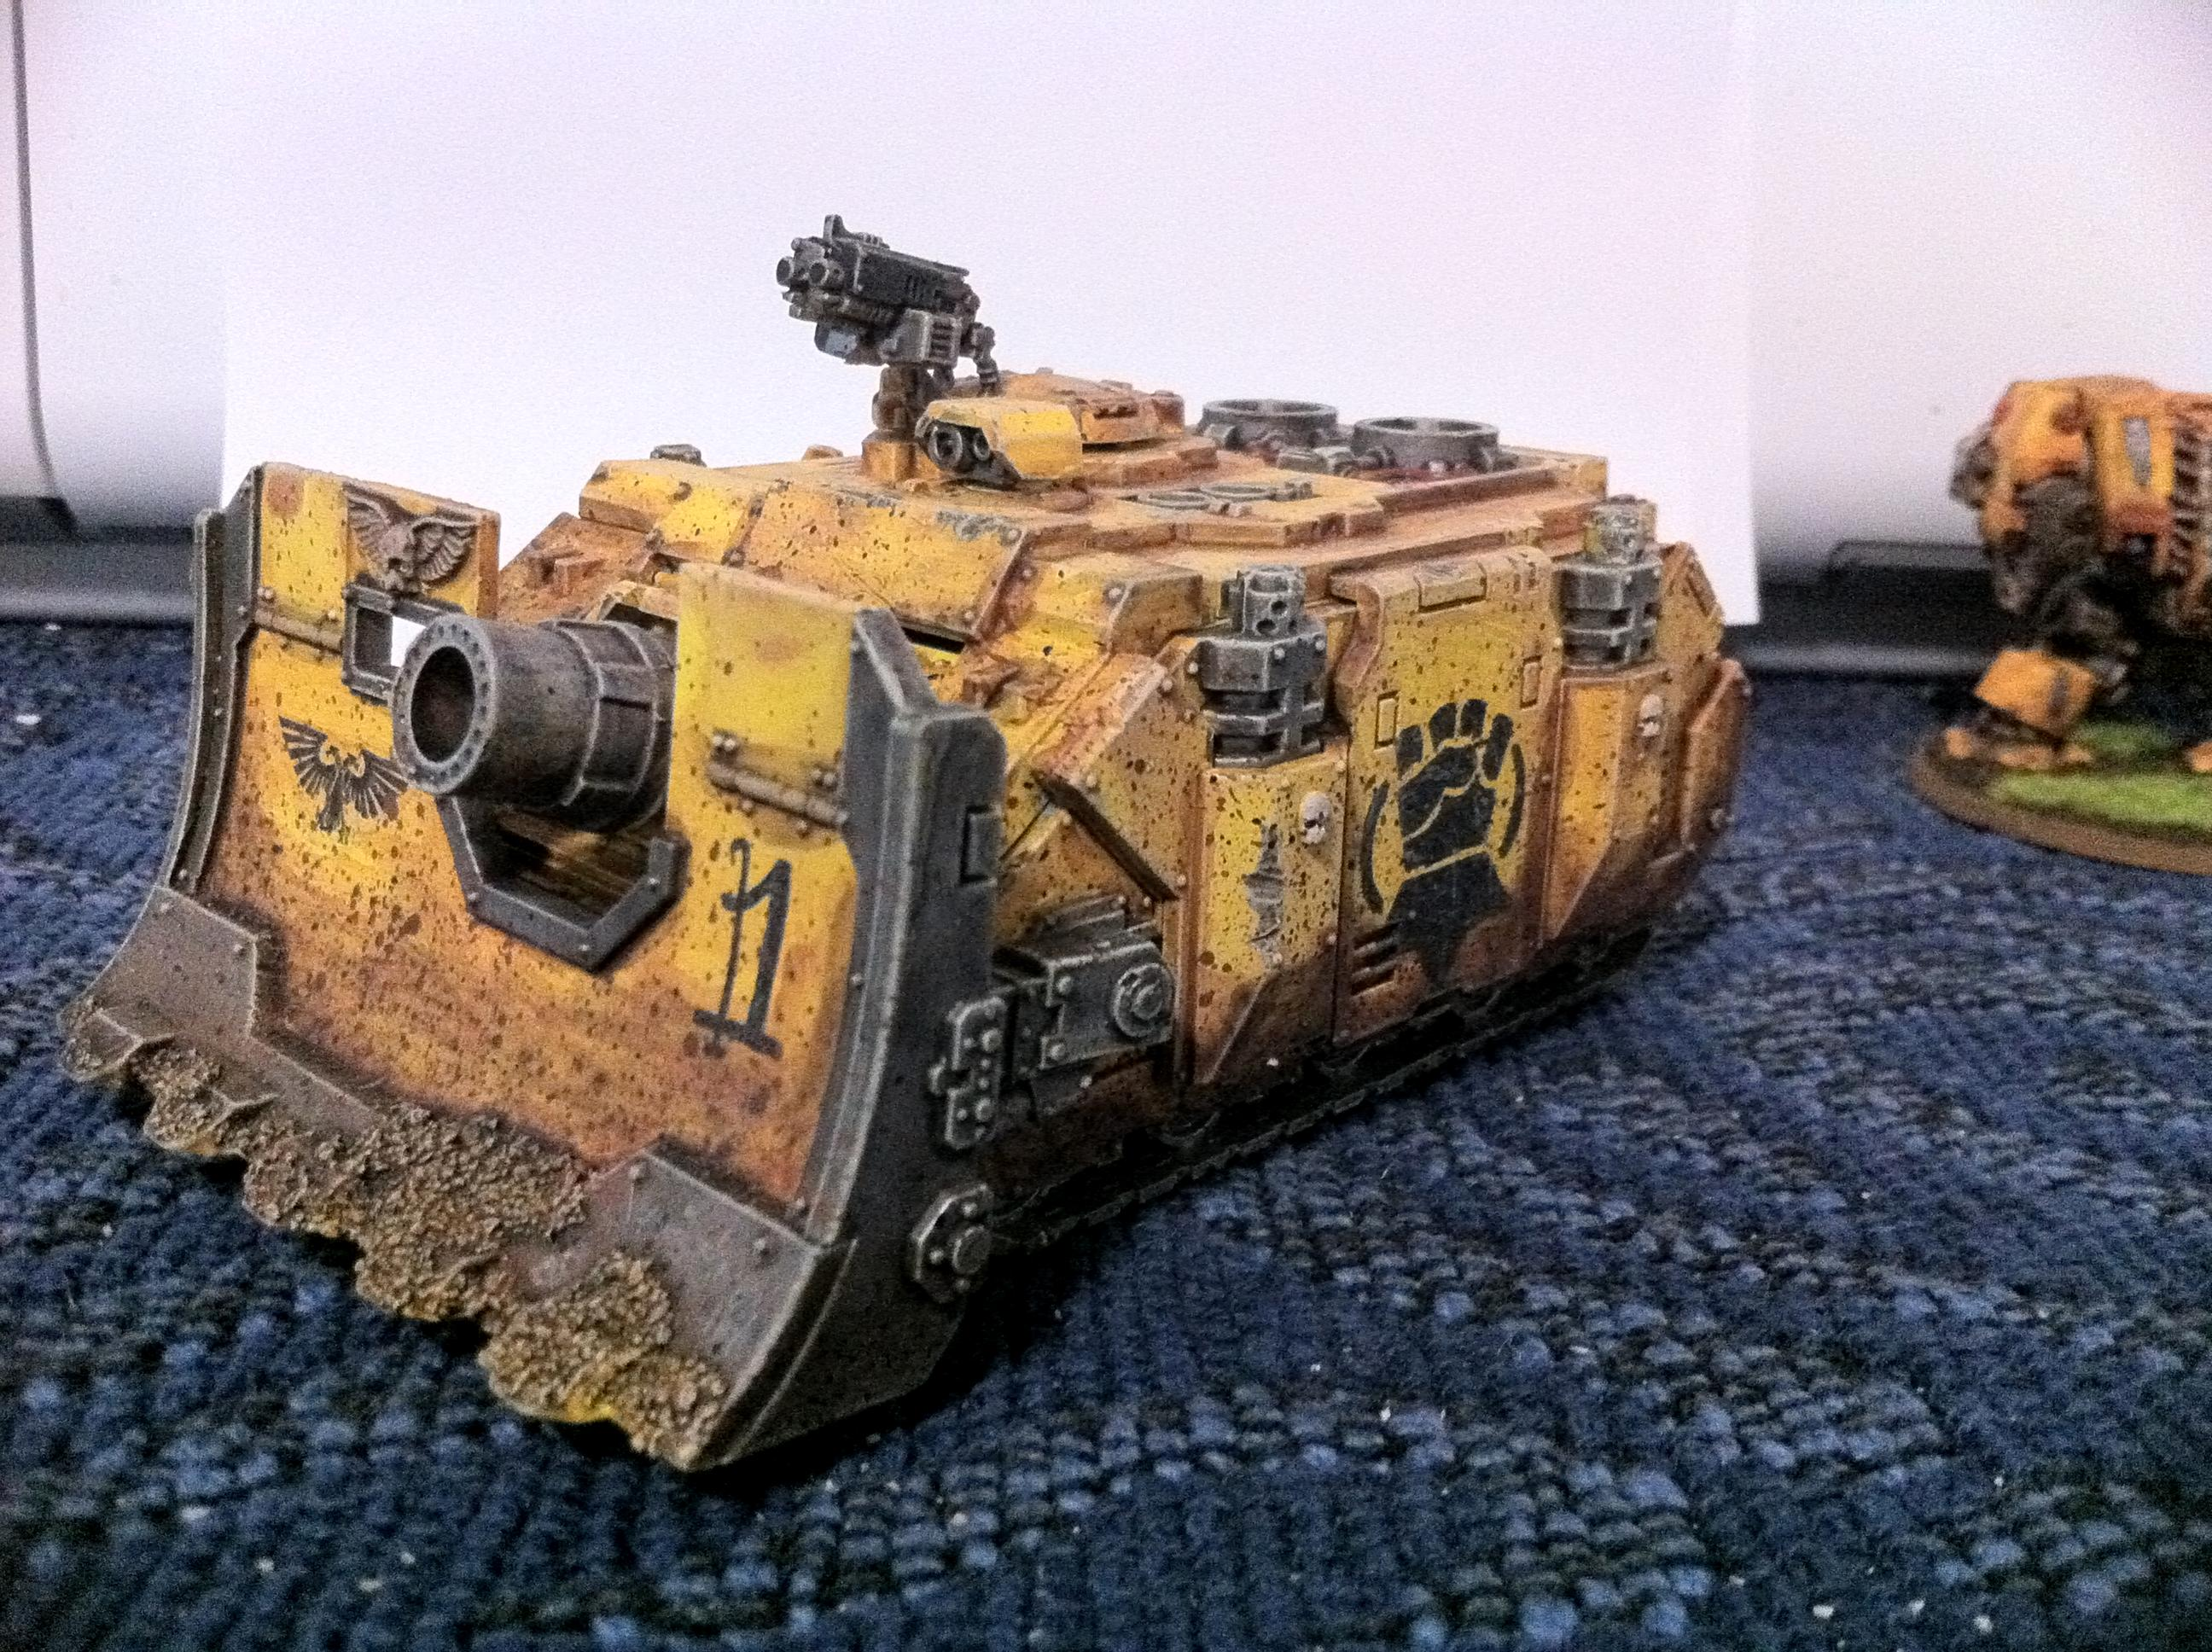 Heavy Support, Imperial Fists, Space Marines, Tank, Vindicator